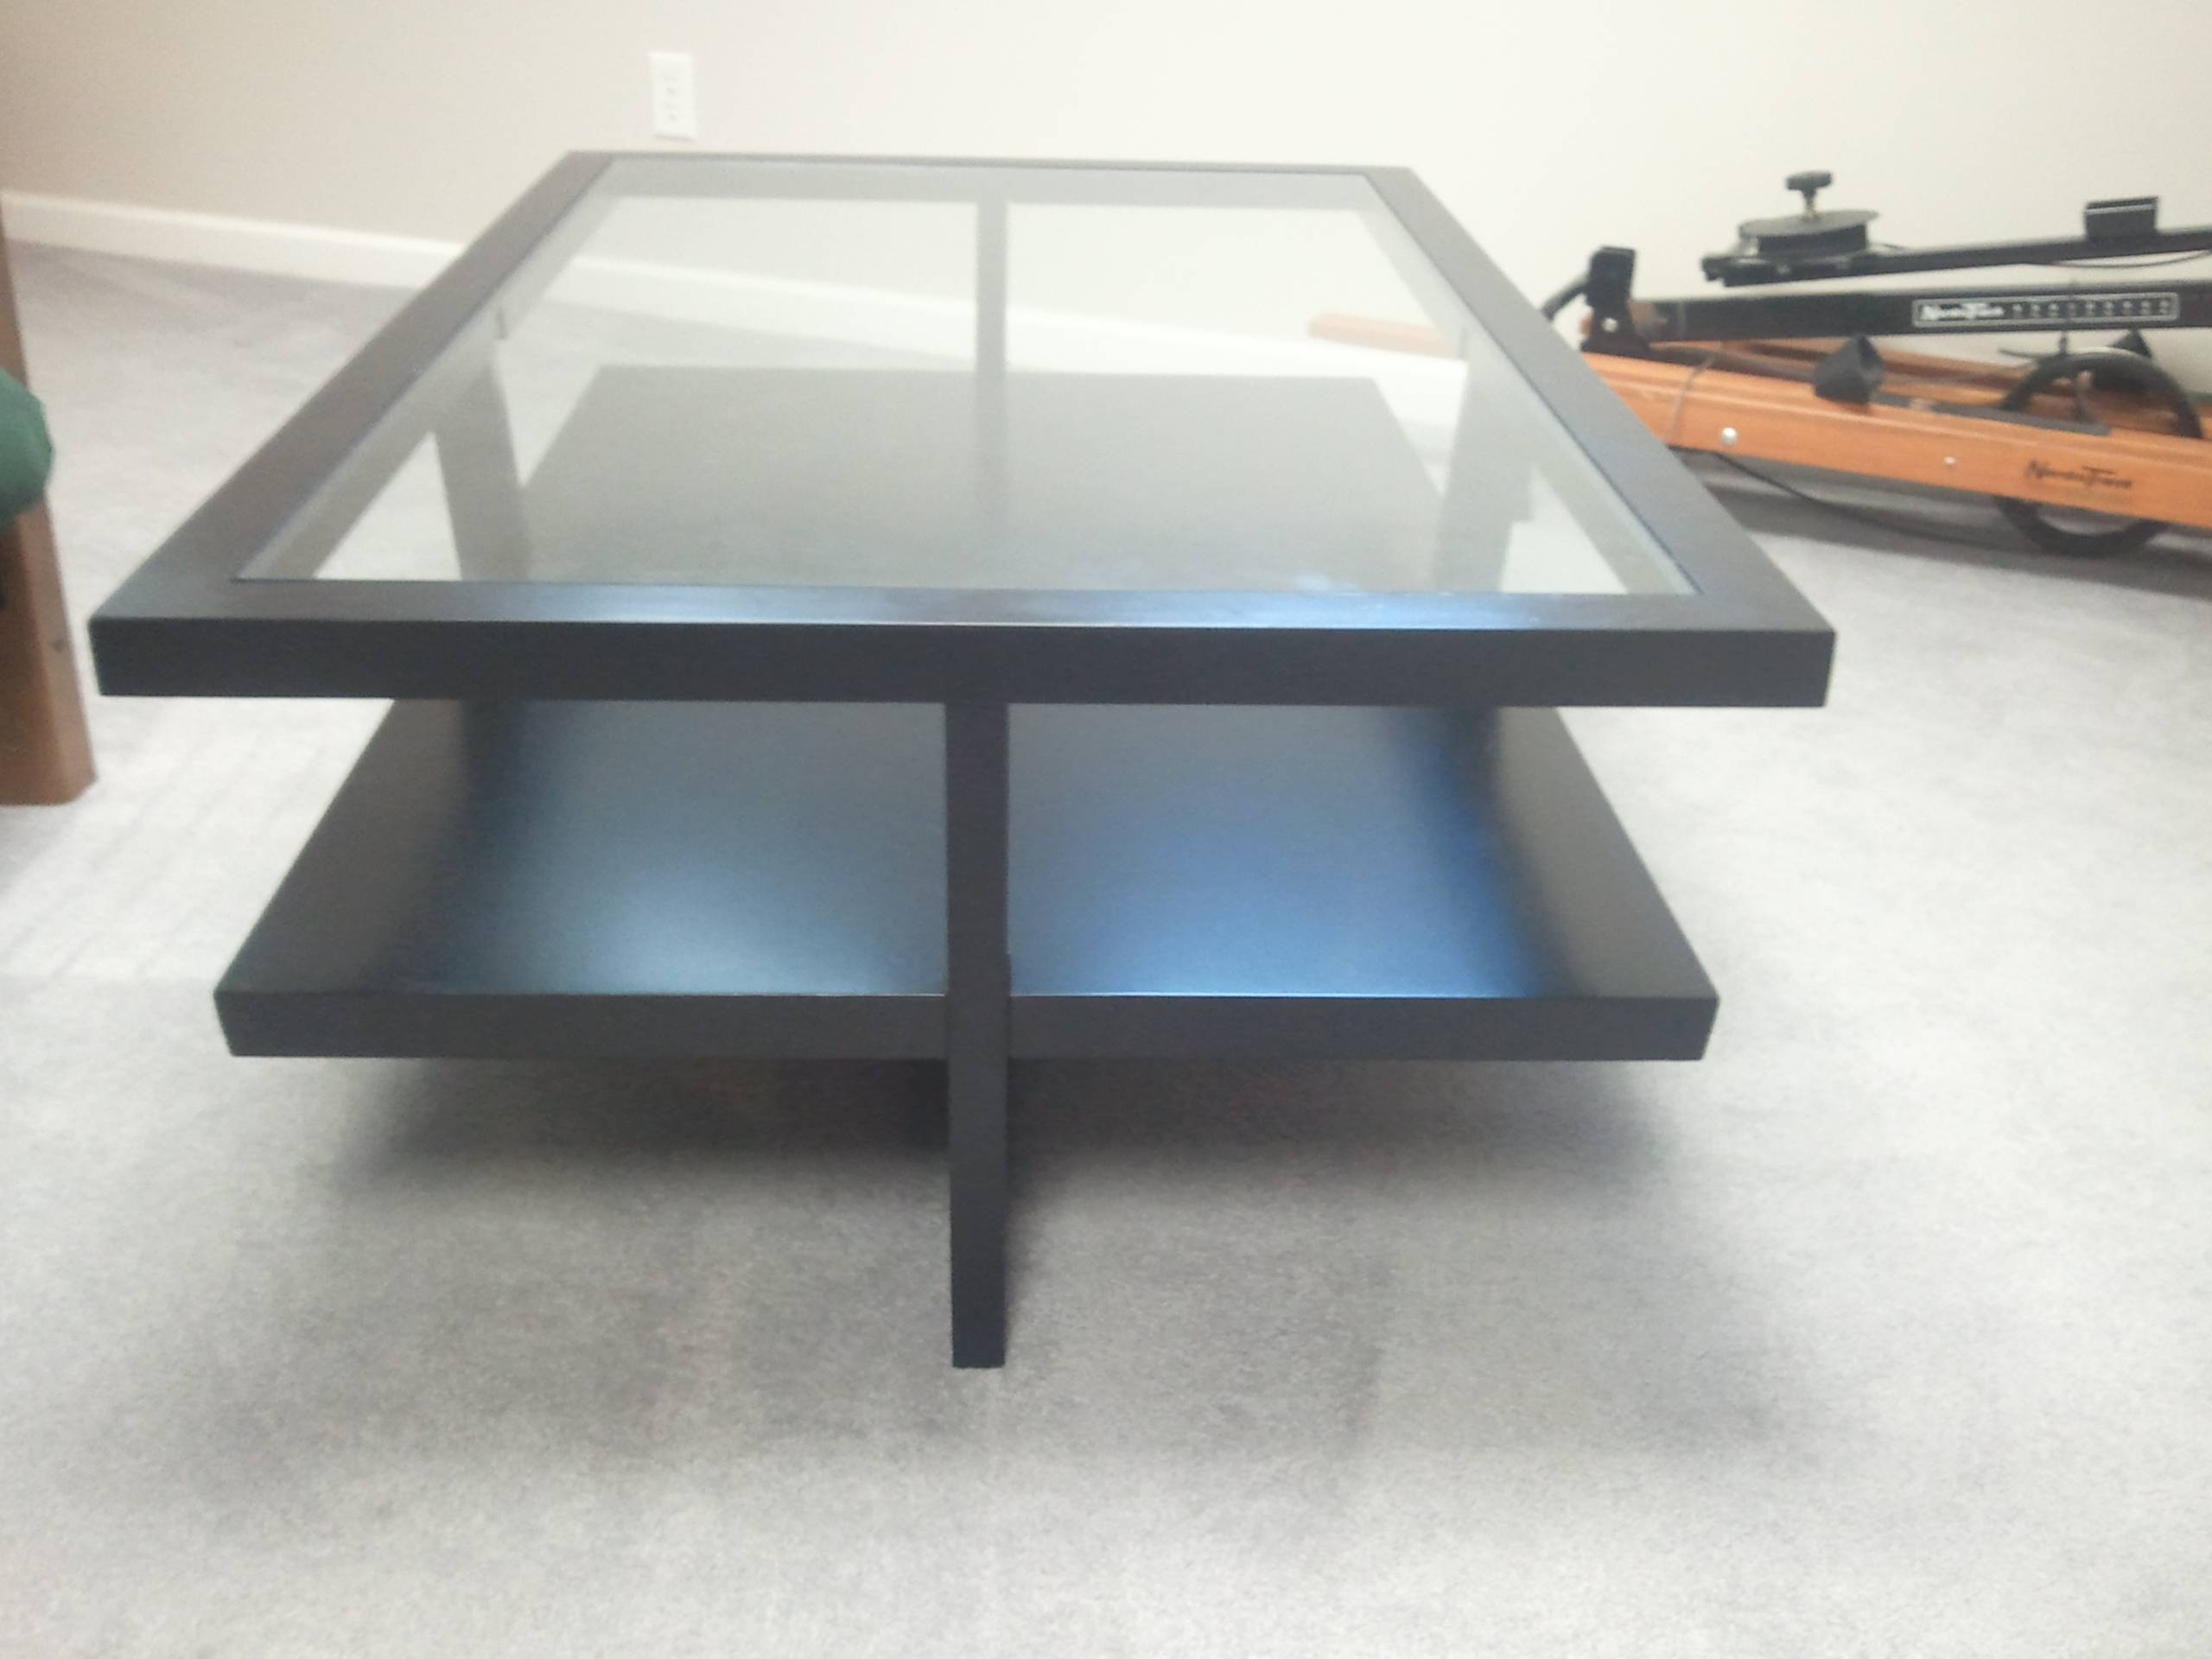 Modern Wood And Glass Coffee Table | Coffee Tables Decoration pertaining to Black Wood and Glass Coffee Tables (Image 22 of 30)